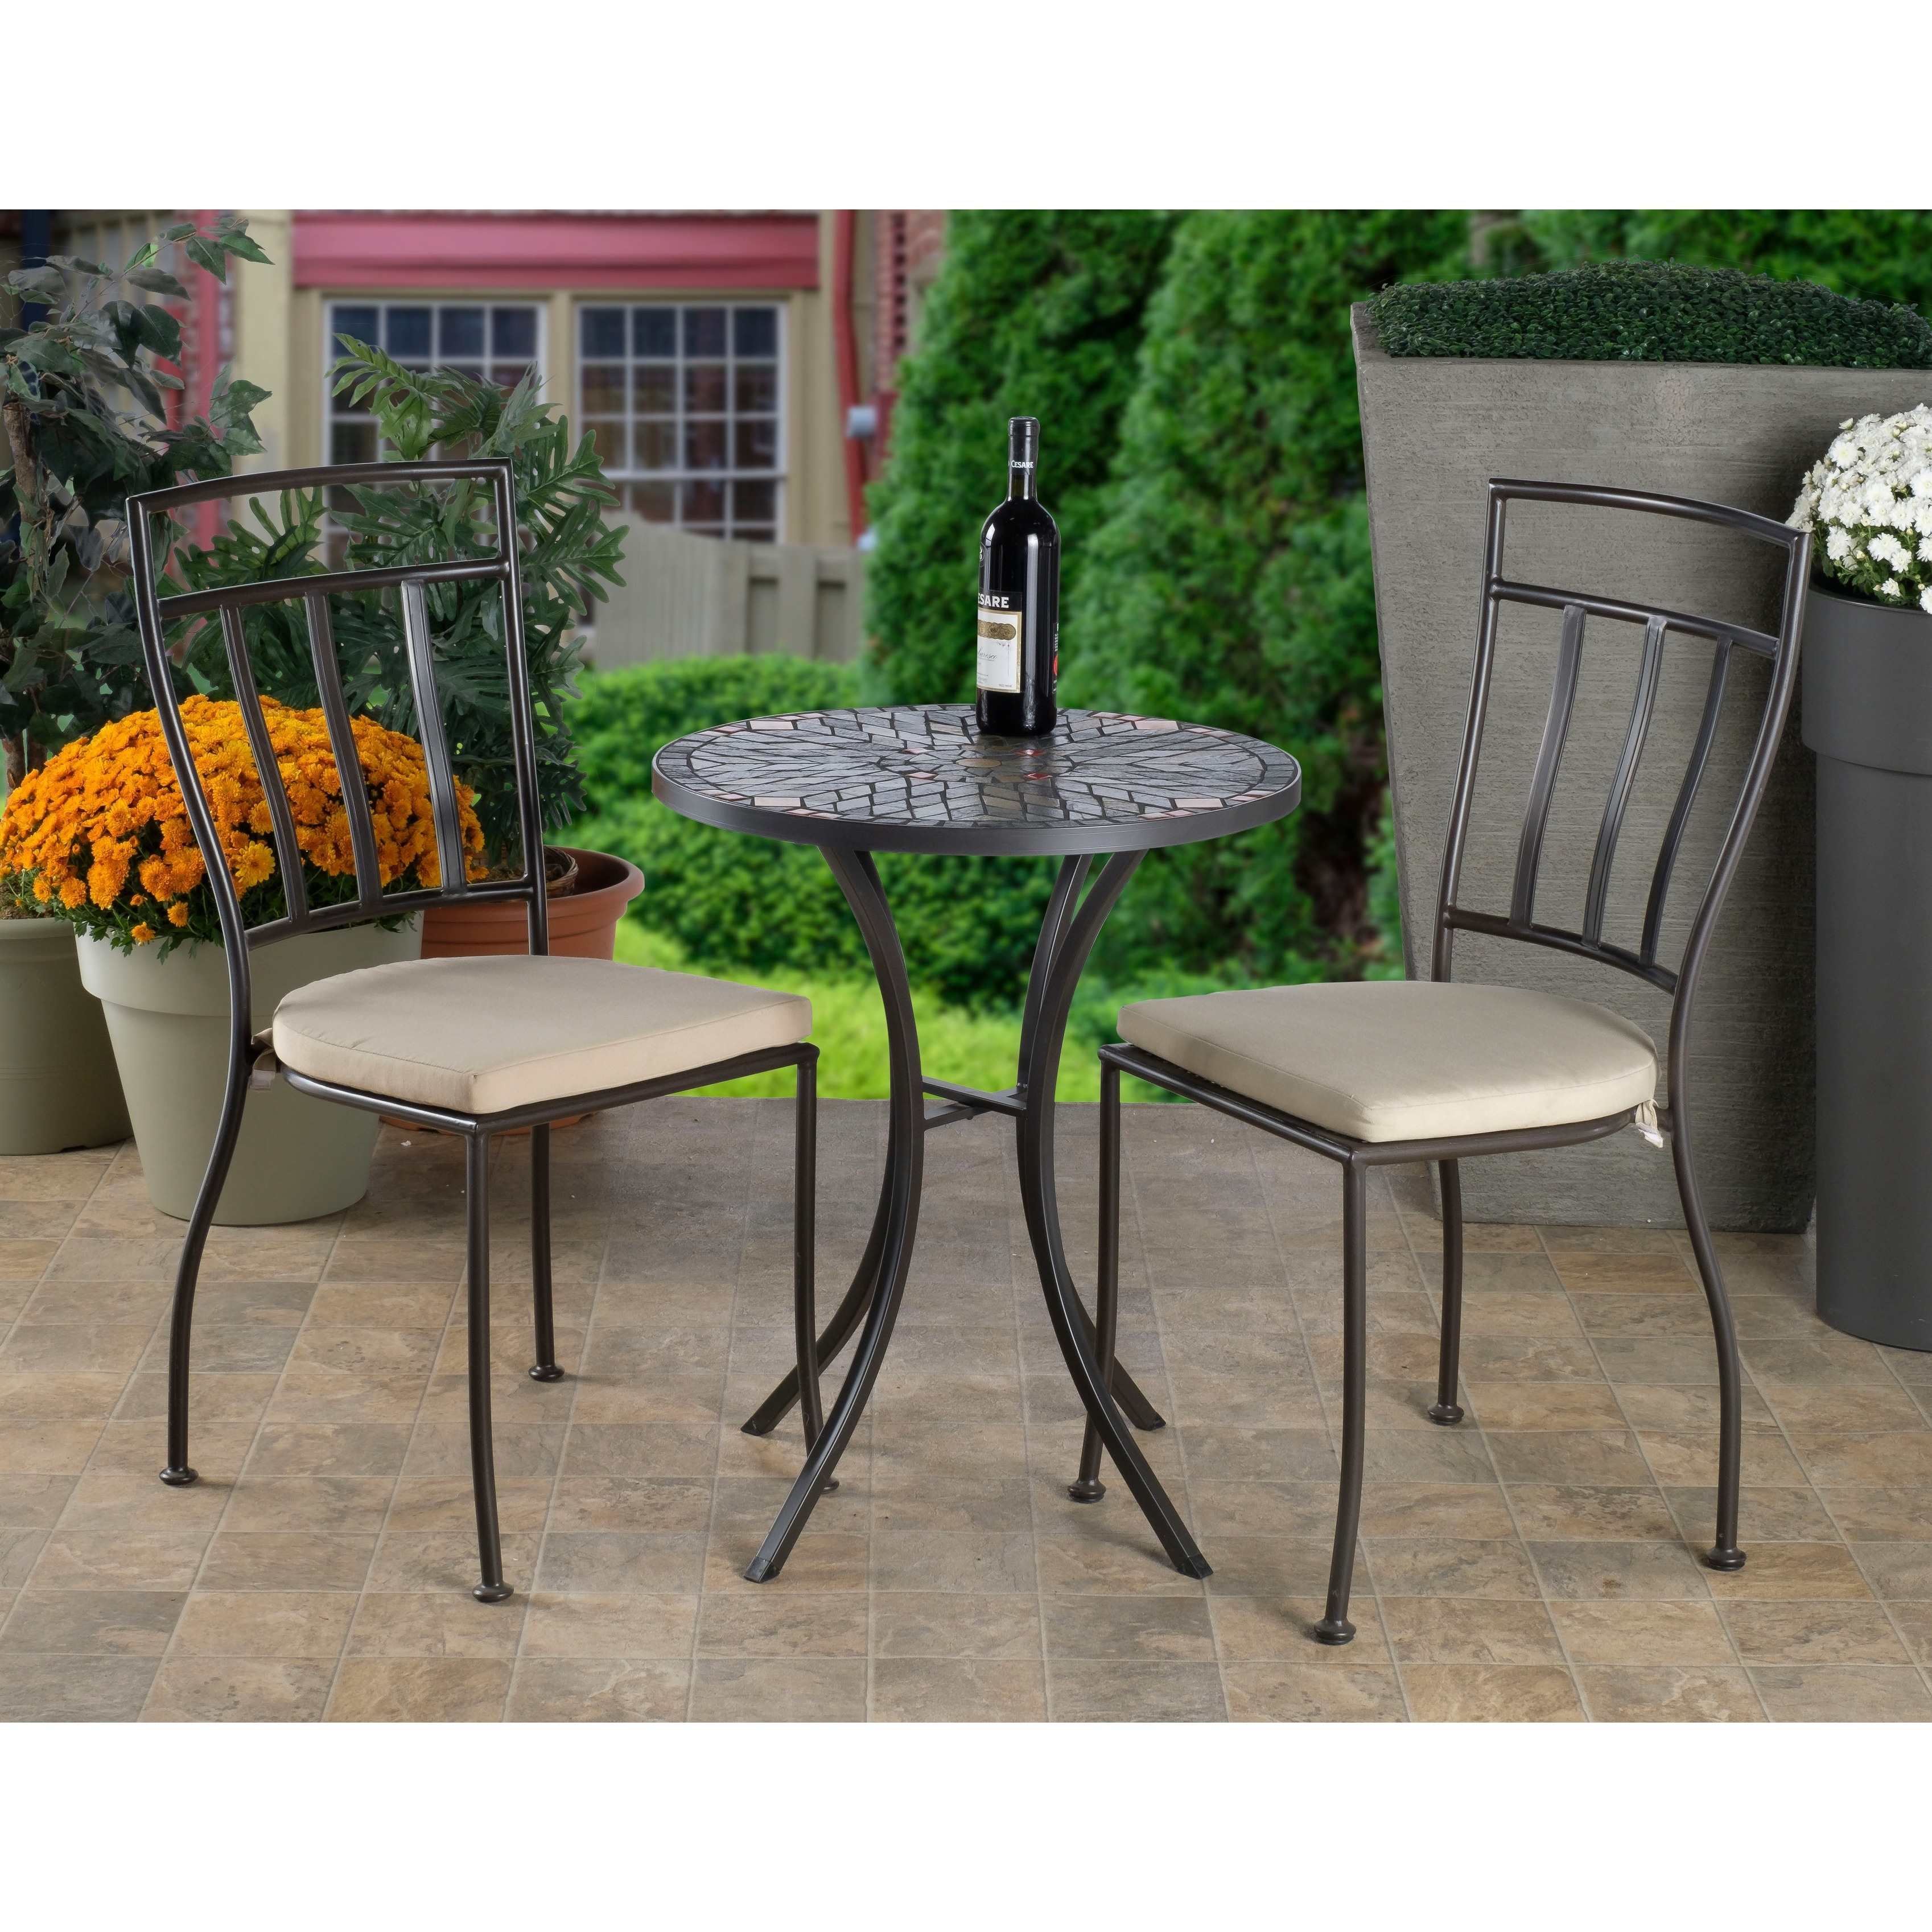 Alfresco home patio furniture find great outdoor seating dining deals shopping at overstock